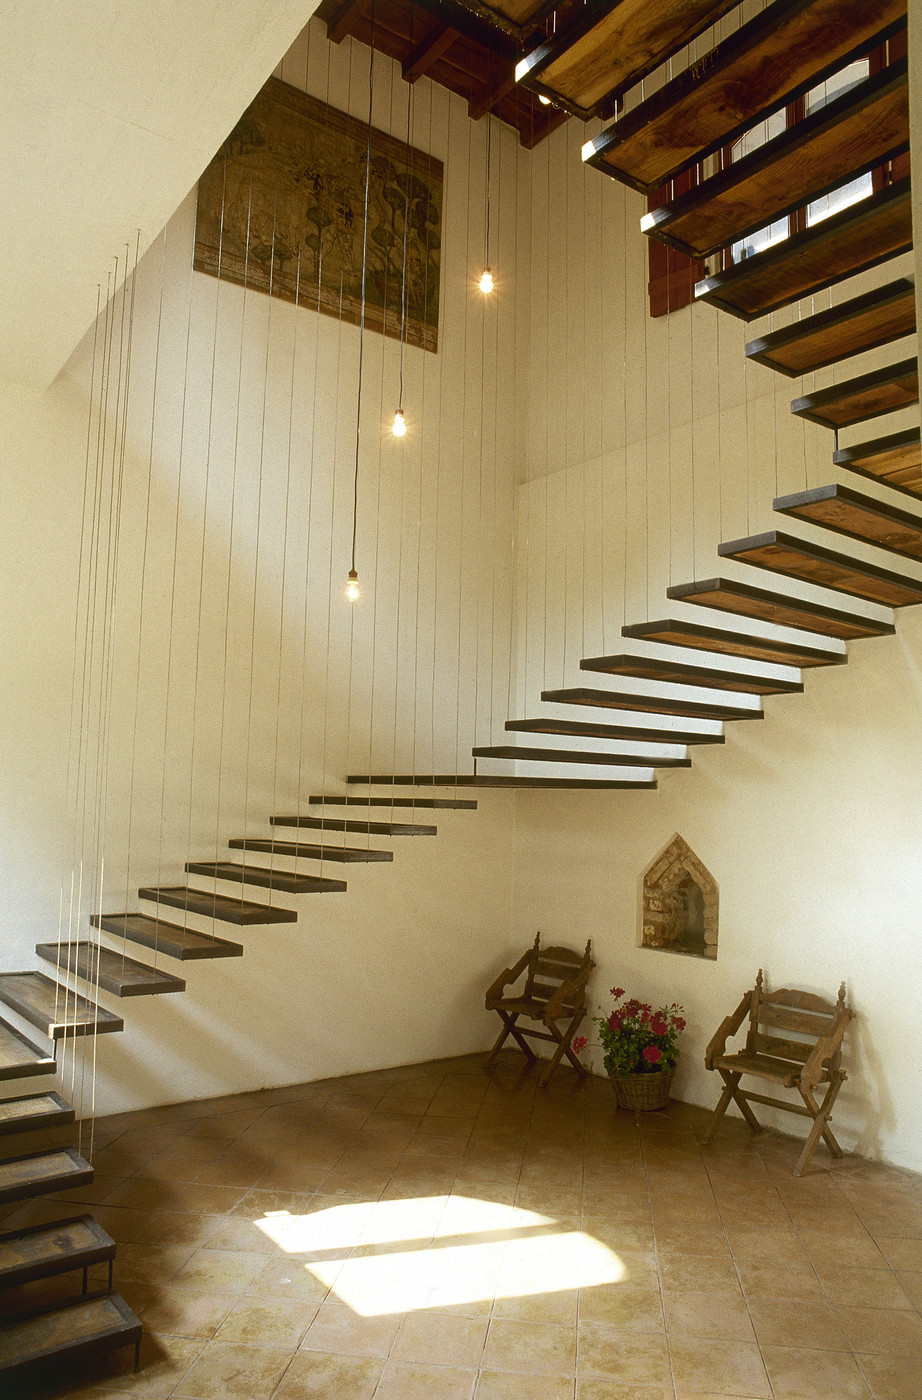 Suspended Stairs Photos Design Ideas Remodel And Decor Lonny